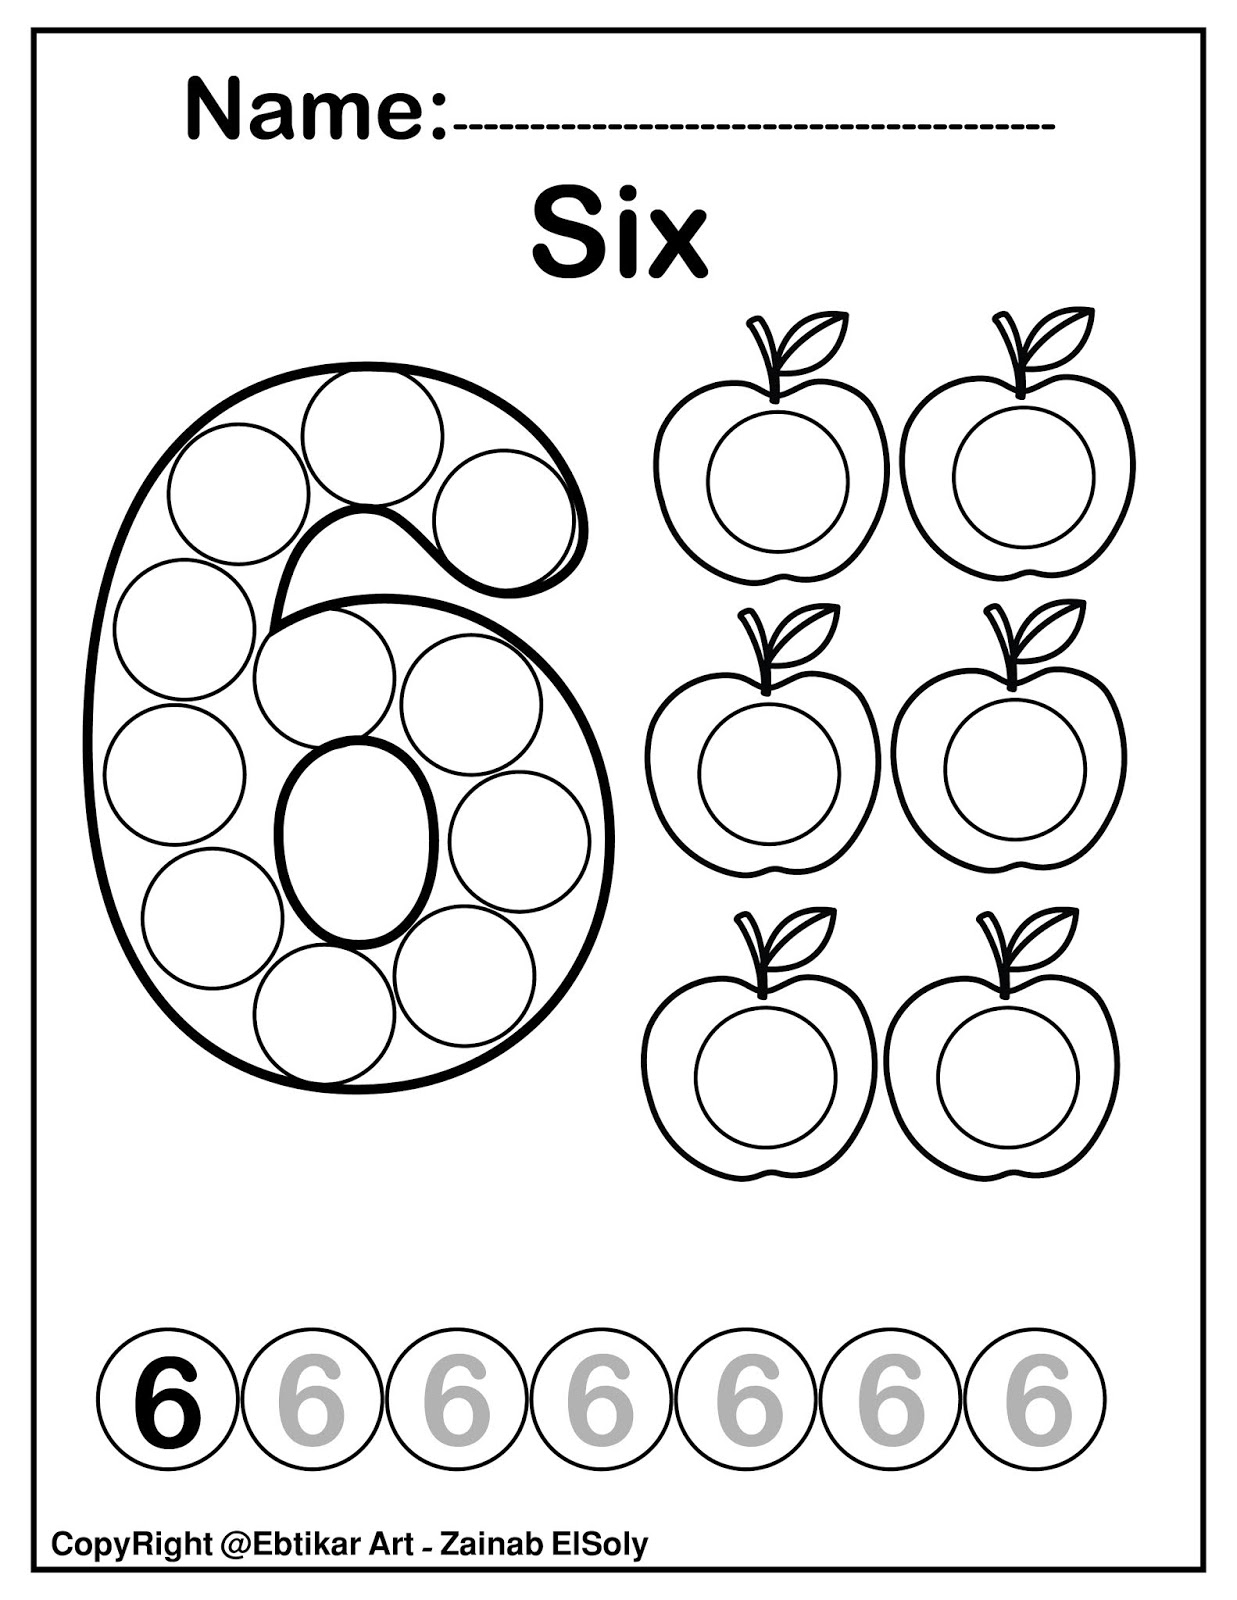 Number 2 Coloring Page - GetColoringPages.com   1600x1237